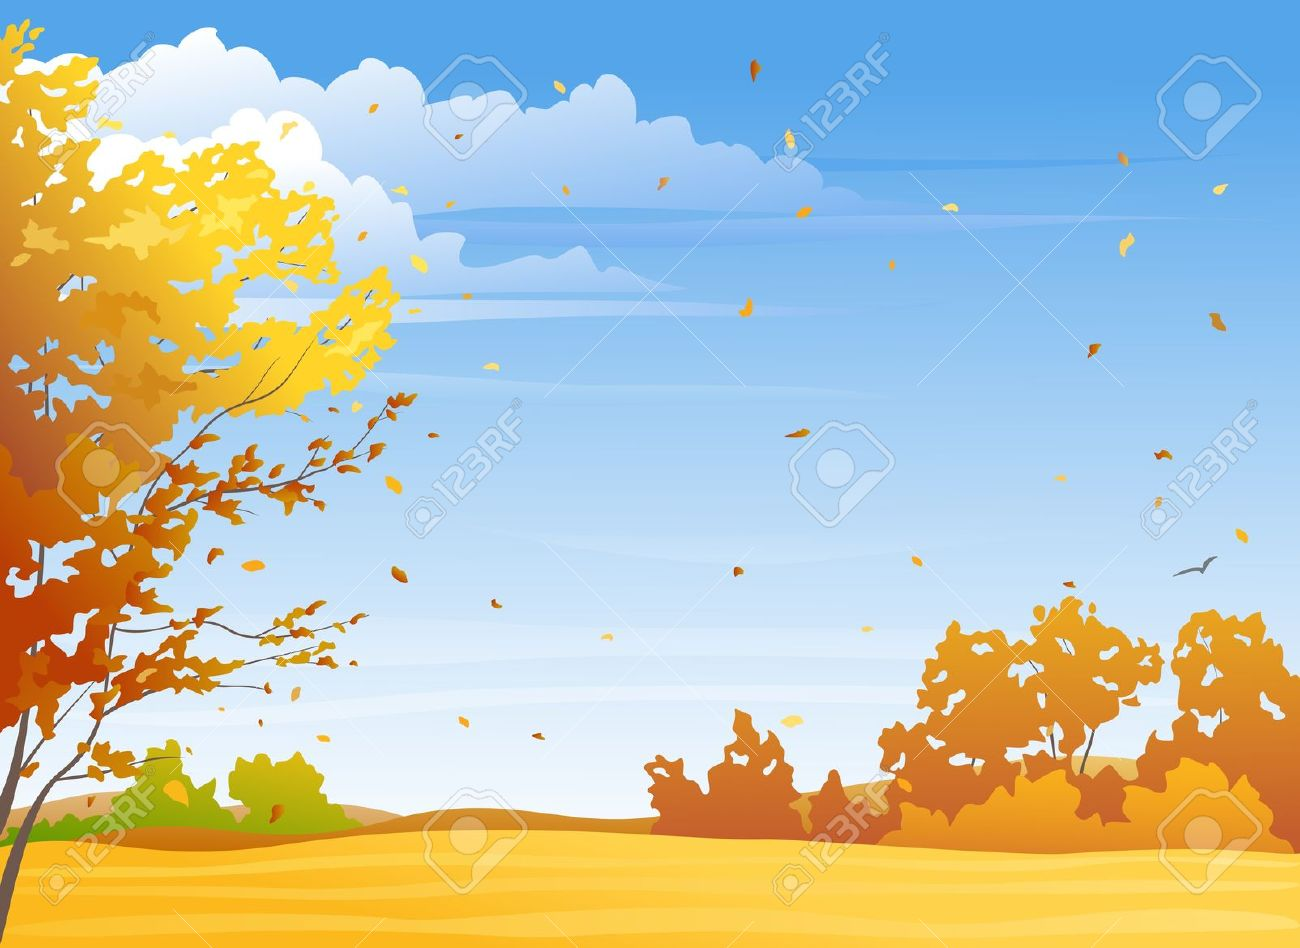 Free Beautiful Autumn Cliparts, Download Free Clip Art, Free.